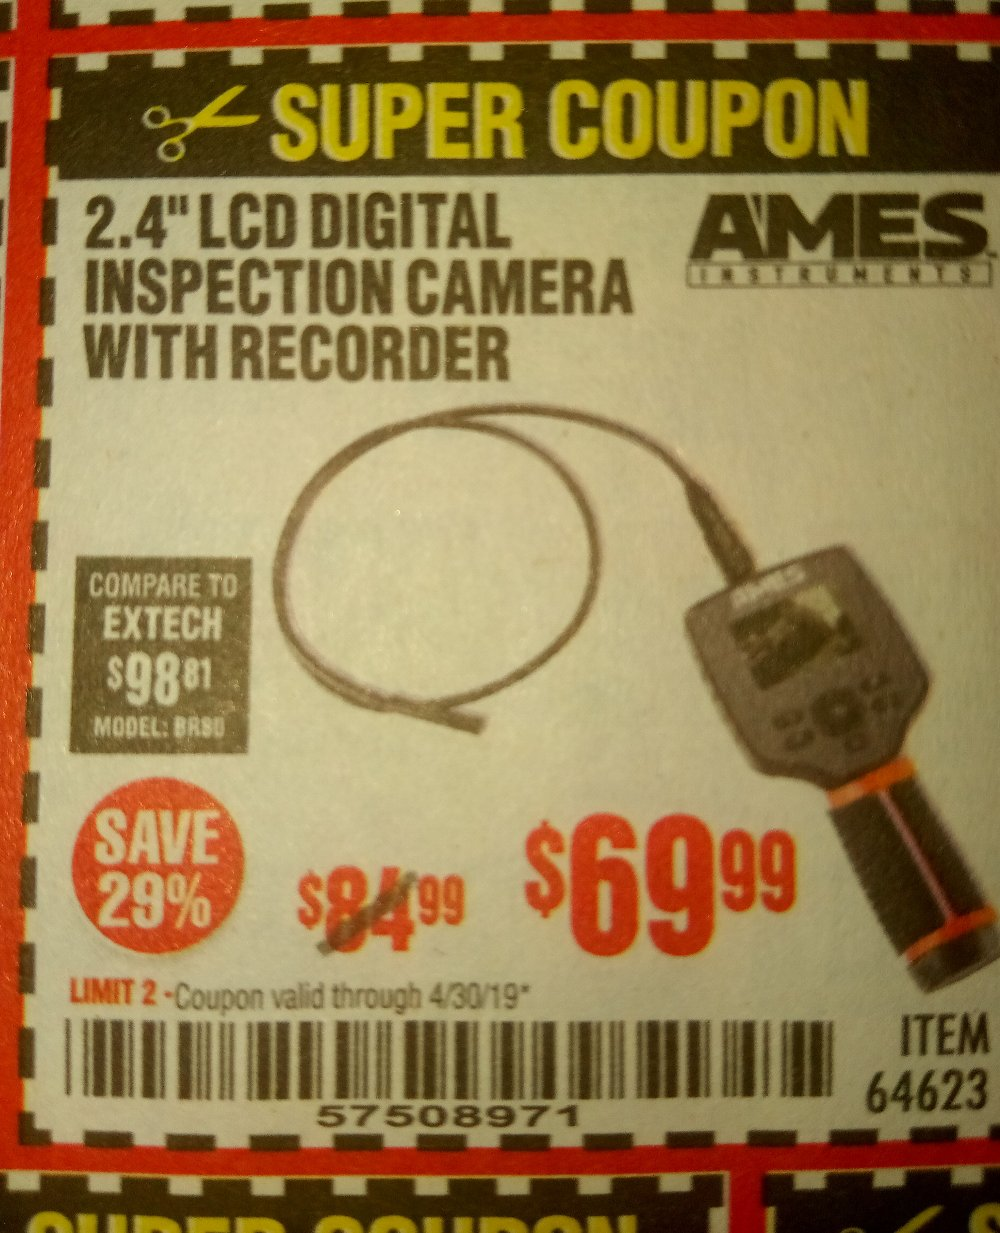 Harbor Freight Coupon, HF Coupons - Ames 2.4